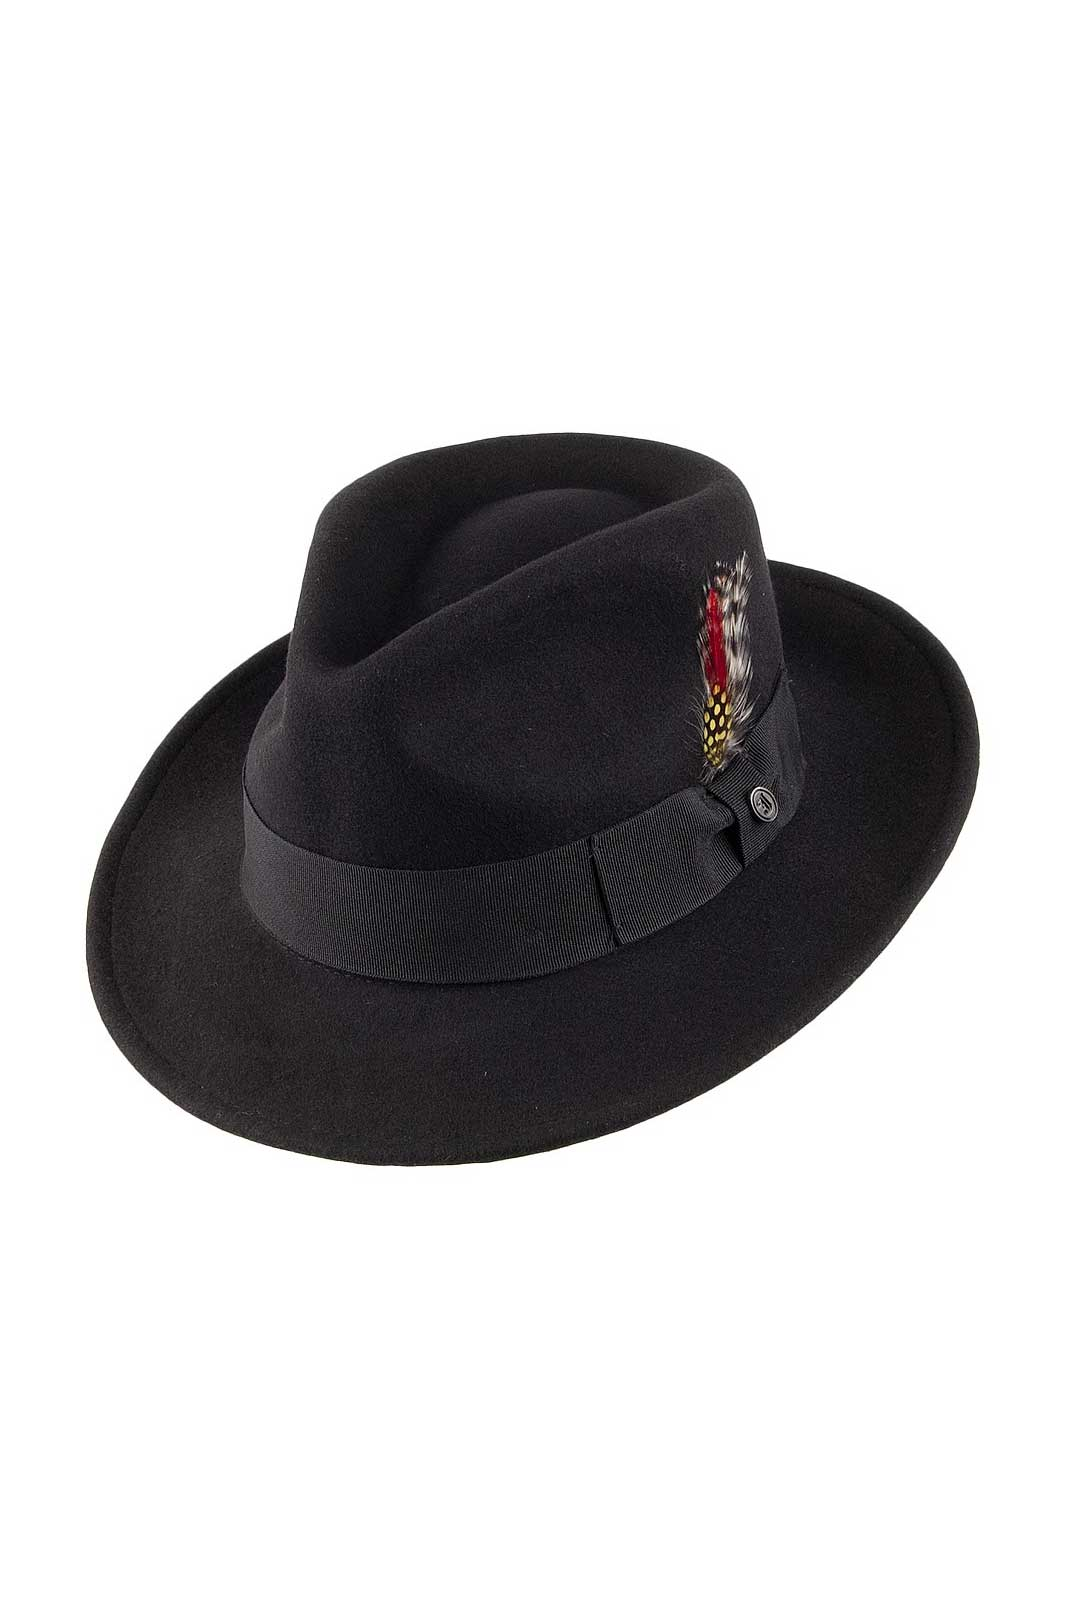 Cruschable C-Crown Fedora Wool Black